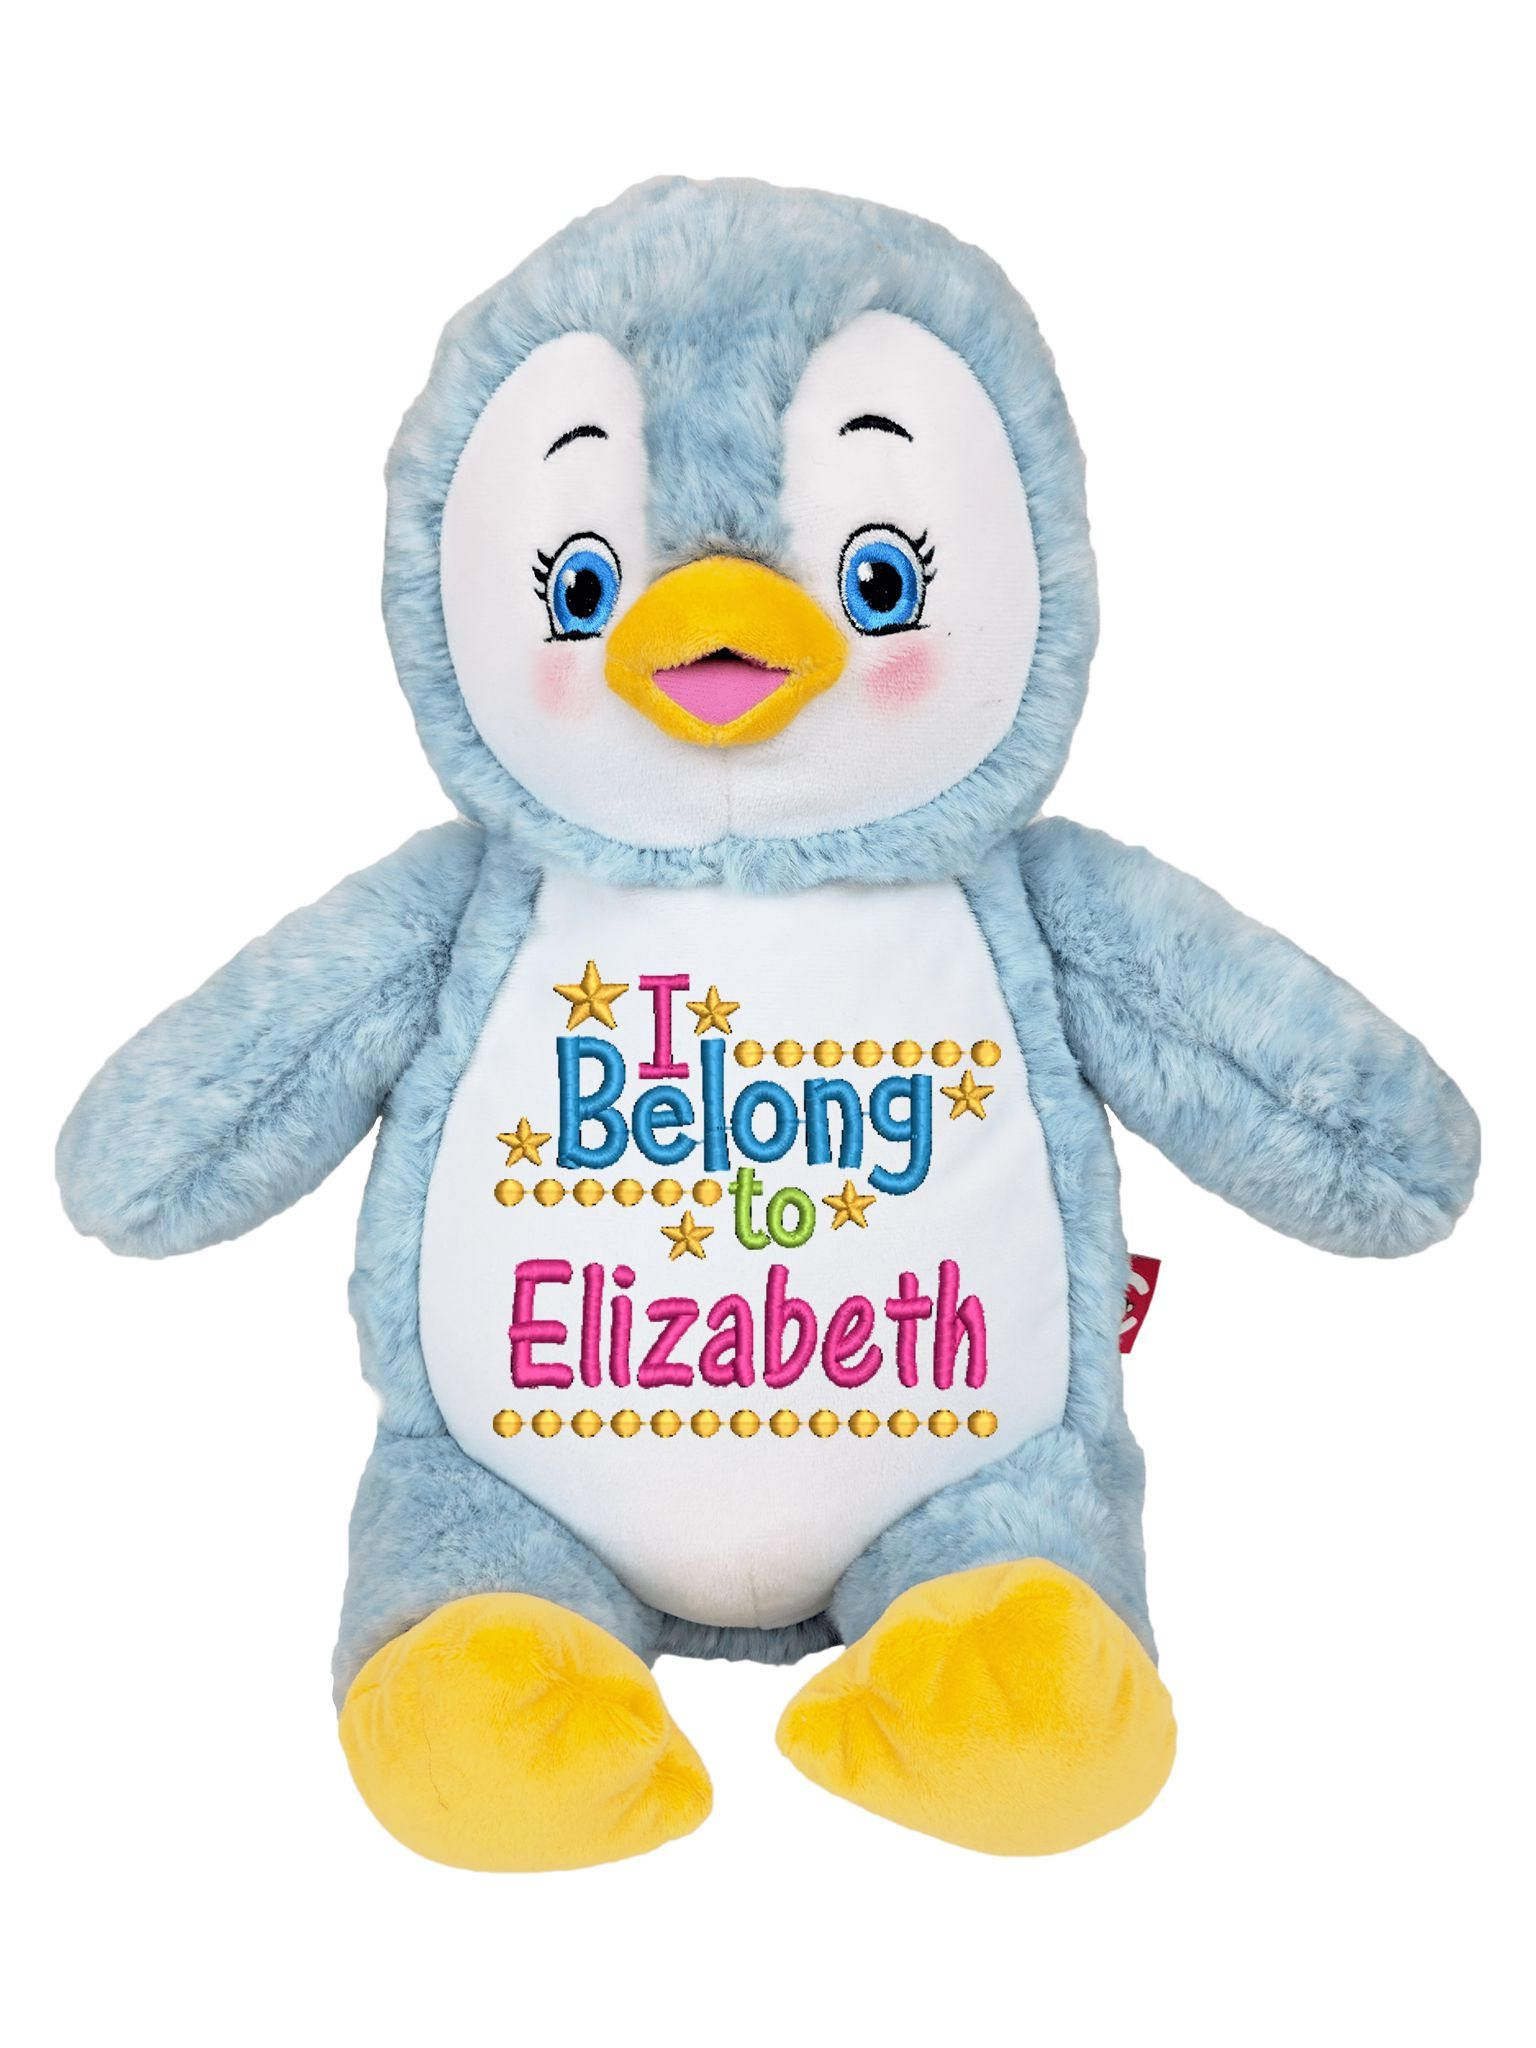 Personalized stuffed animal cubby penguin plush toy new born personalized stuffed animal cubby penguin plush toy new born baby gift shower negle Choice Image